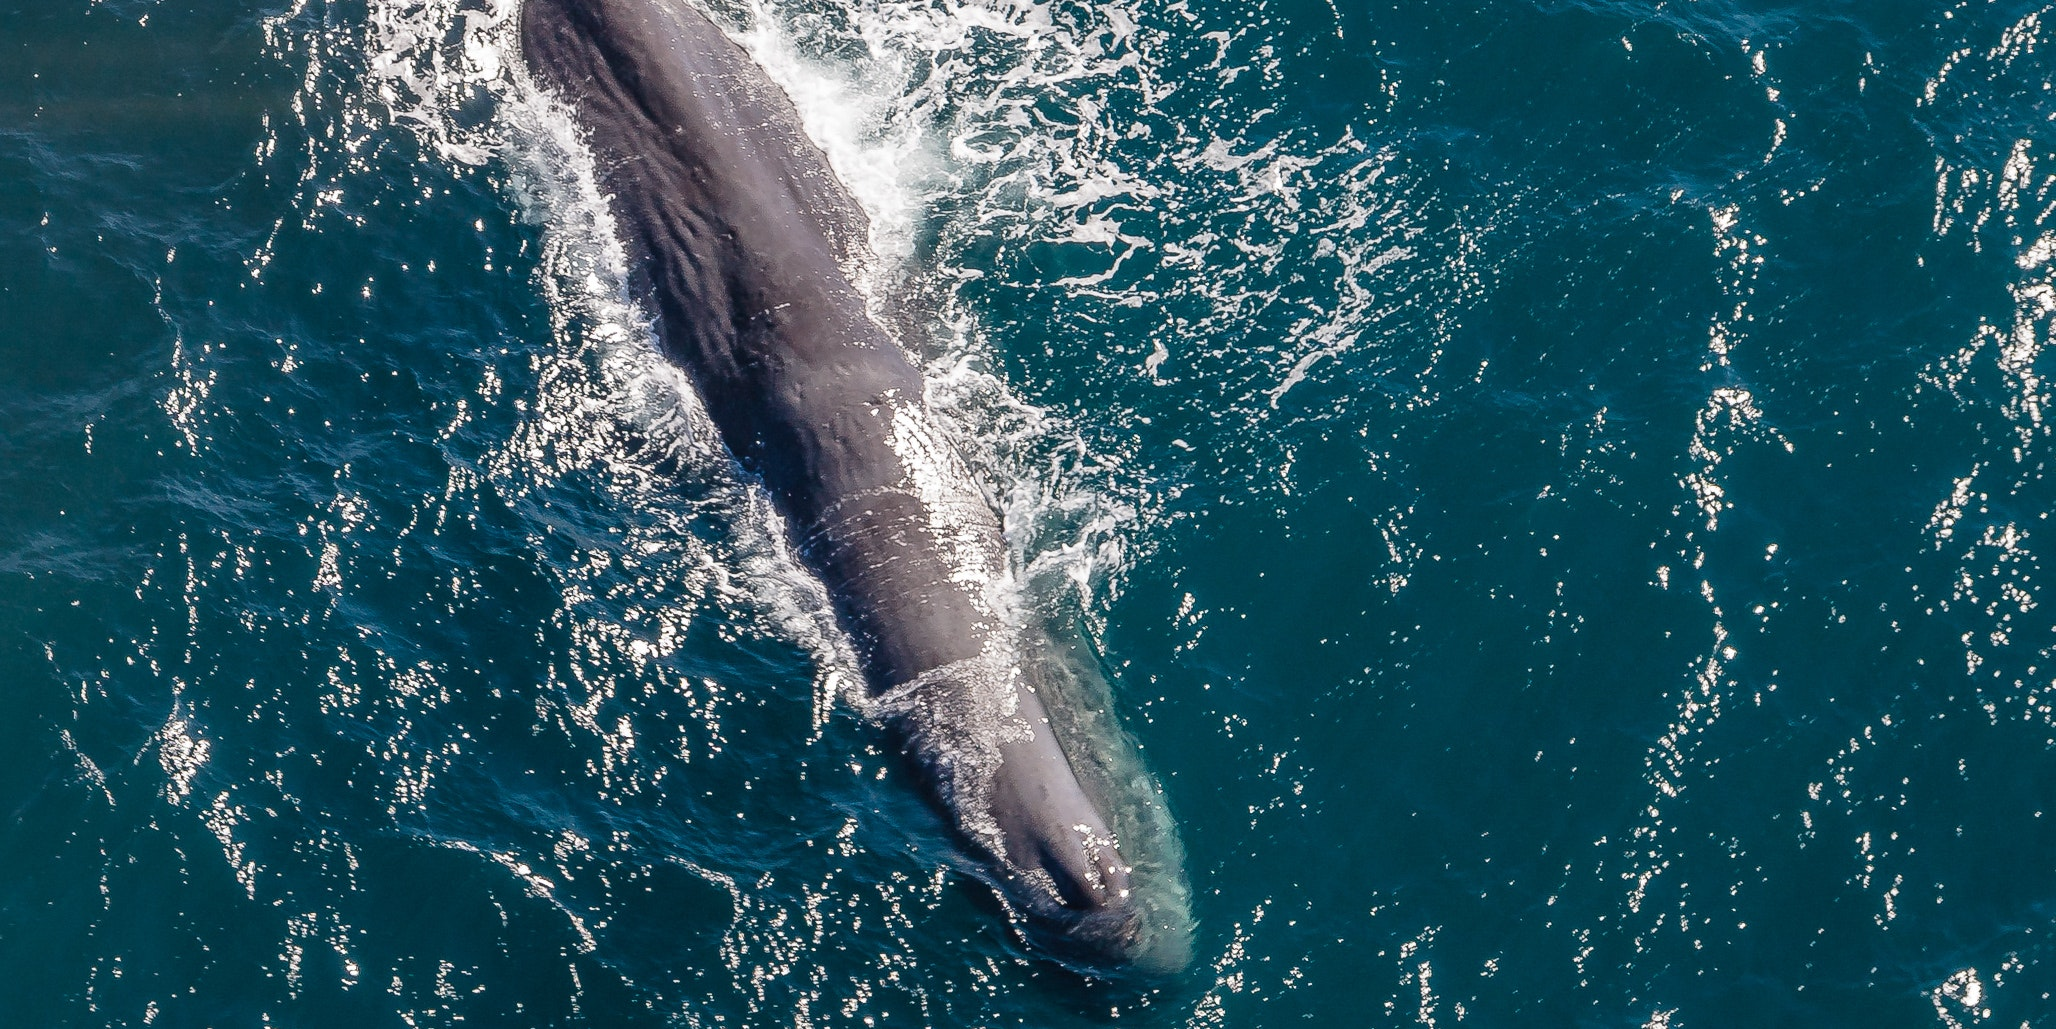 Huge Sperm Whale Reduced to Empty Carcass After Ingesting 64 Lbs of Plastic